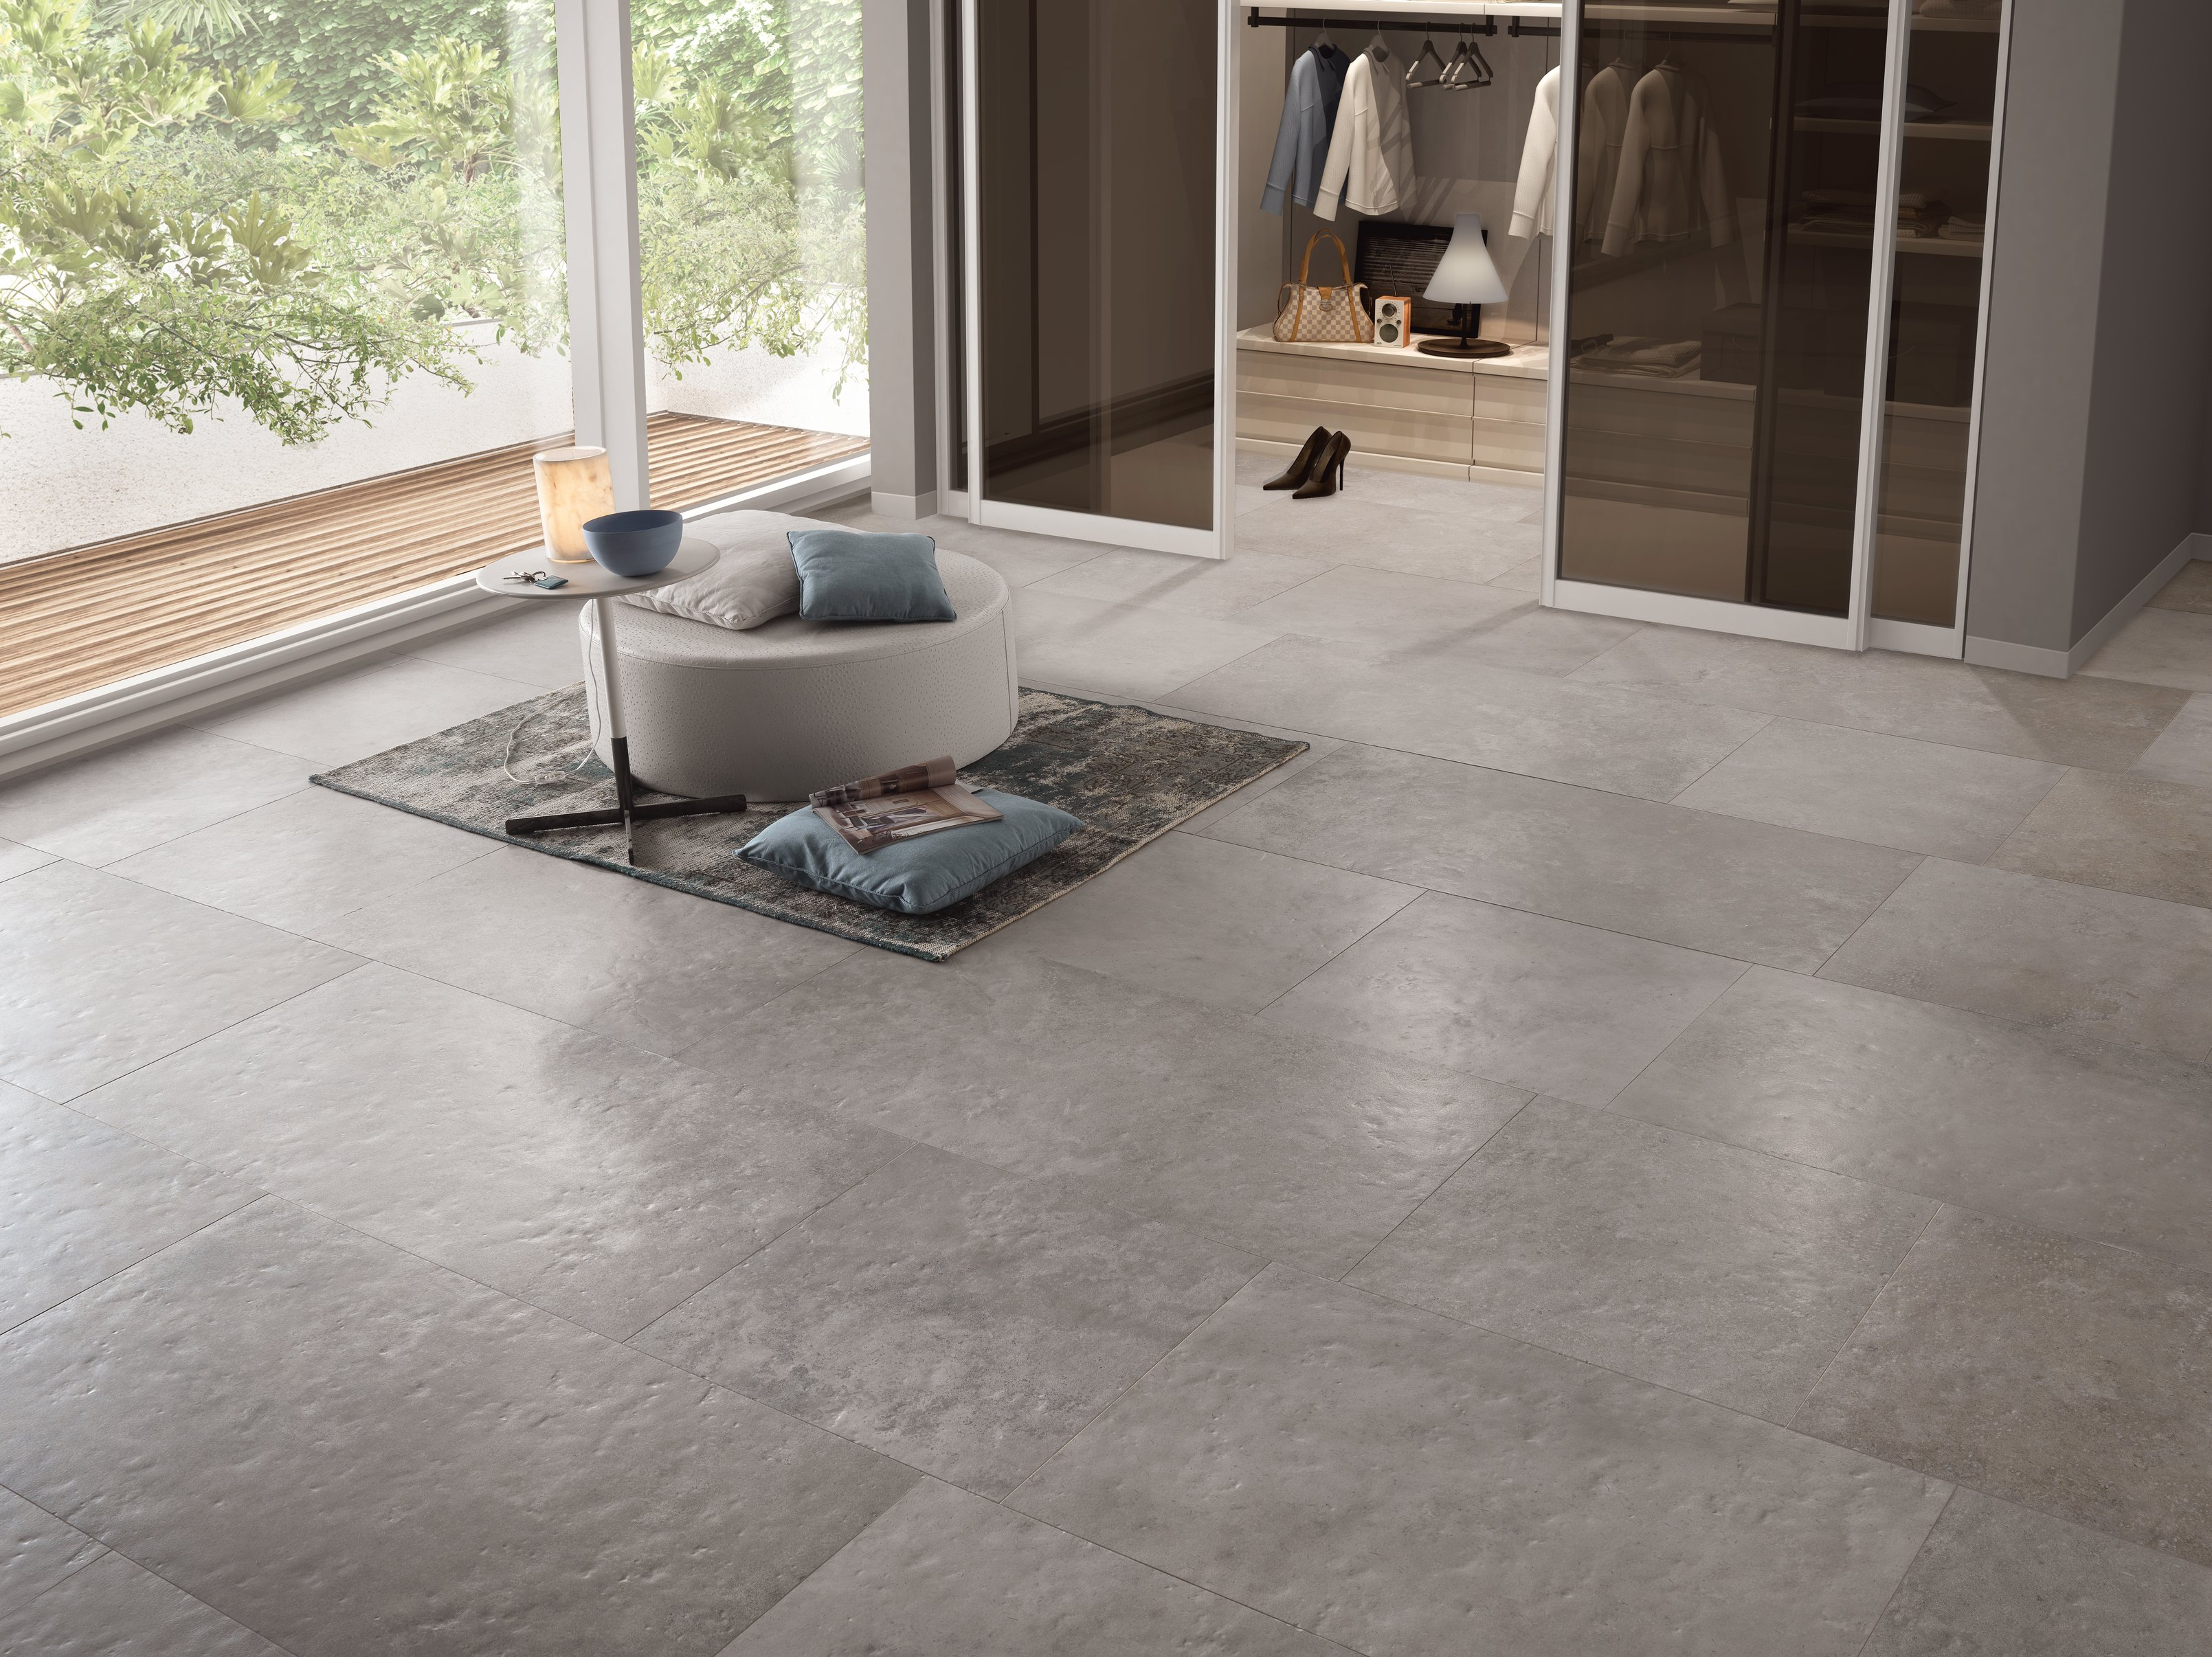 Carrelage Tendance Angers Stunning Carrelage Gamme With Carrelage